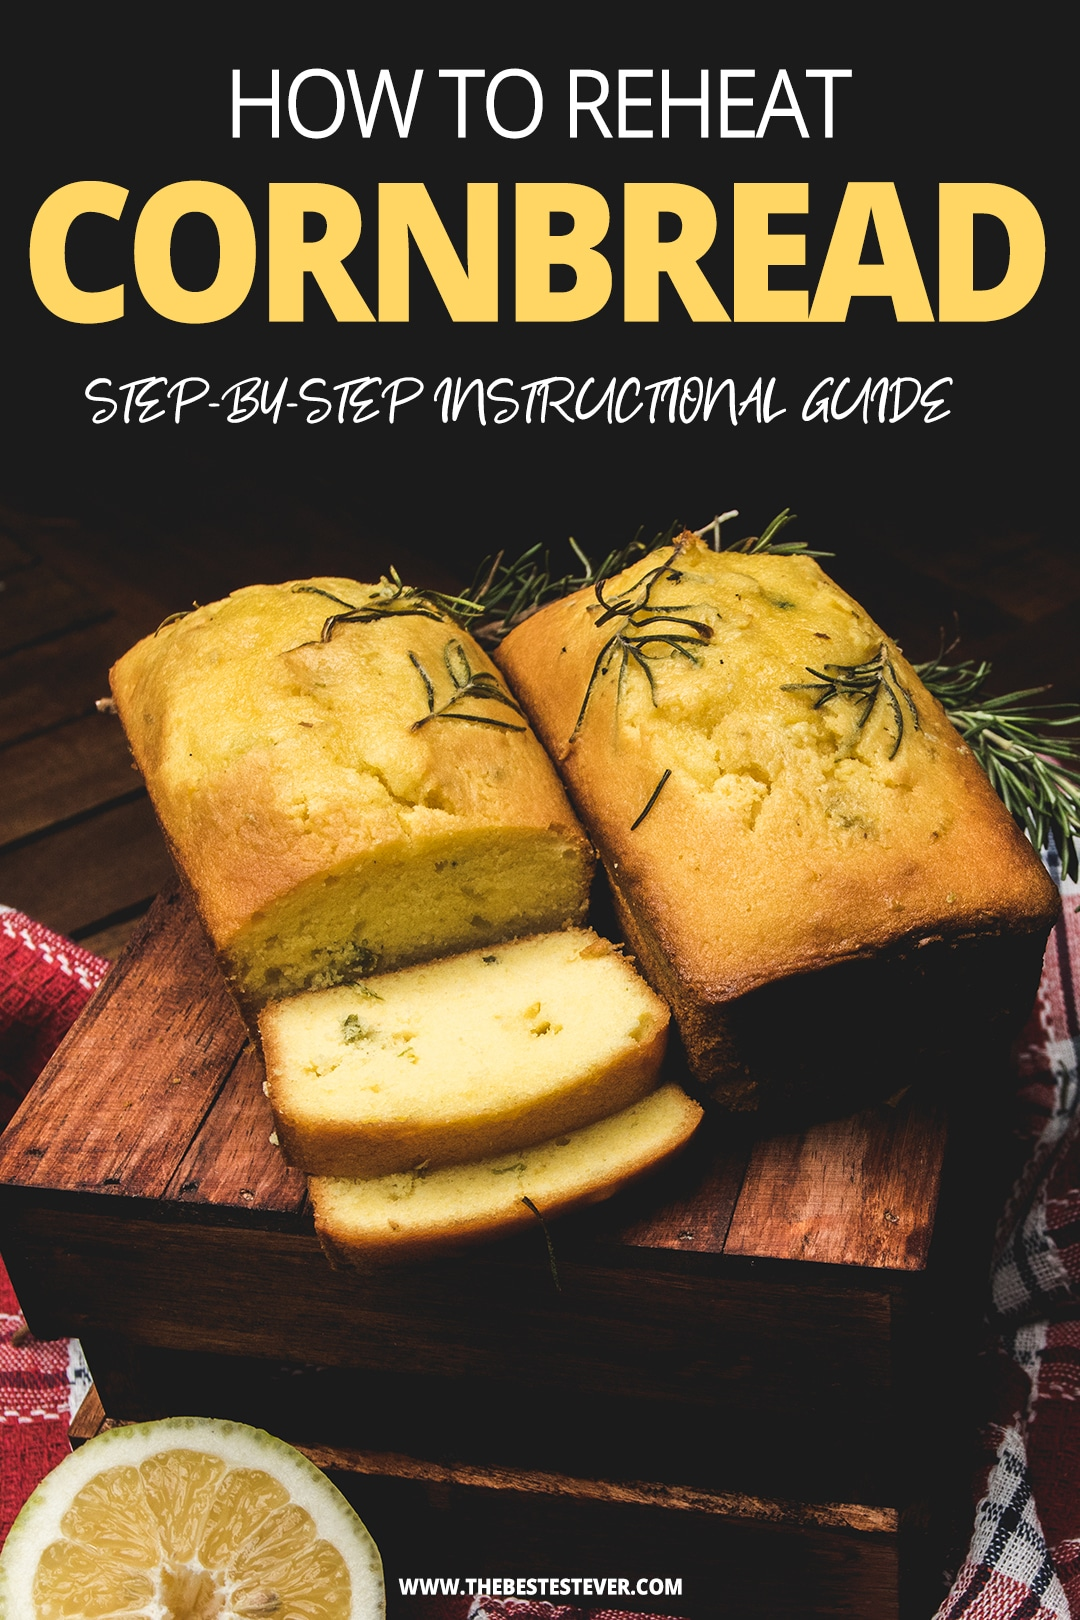 How to Warm Up Cornbread